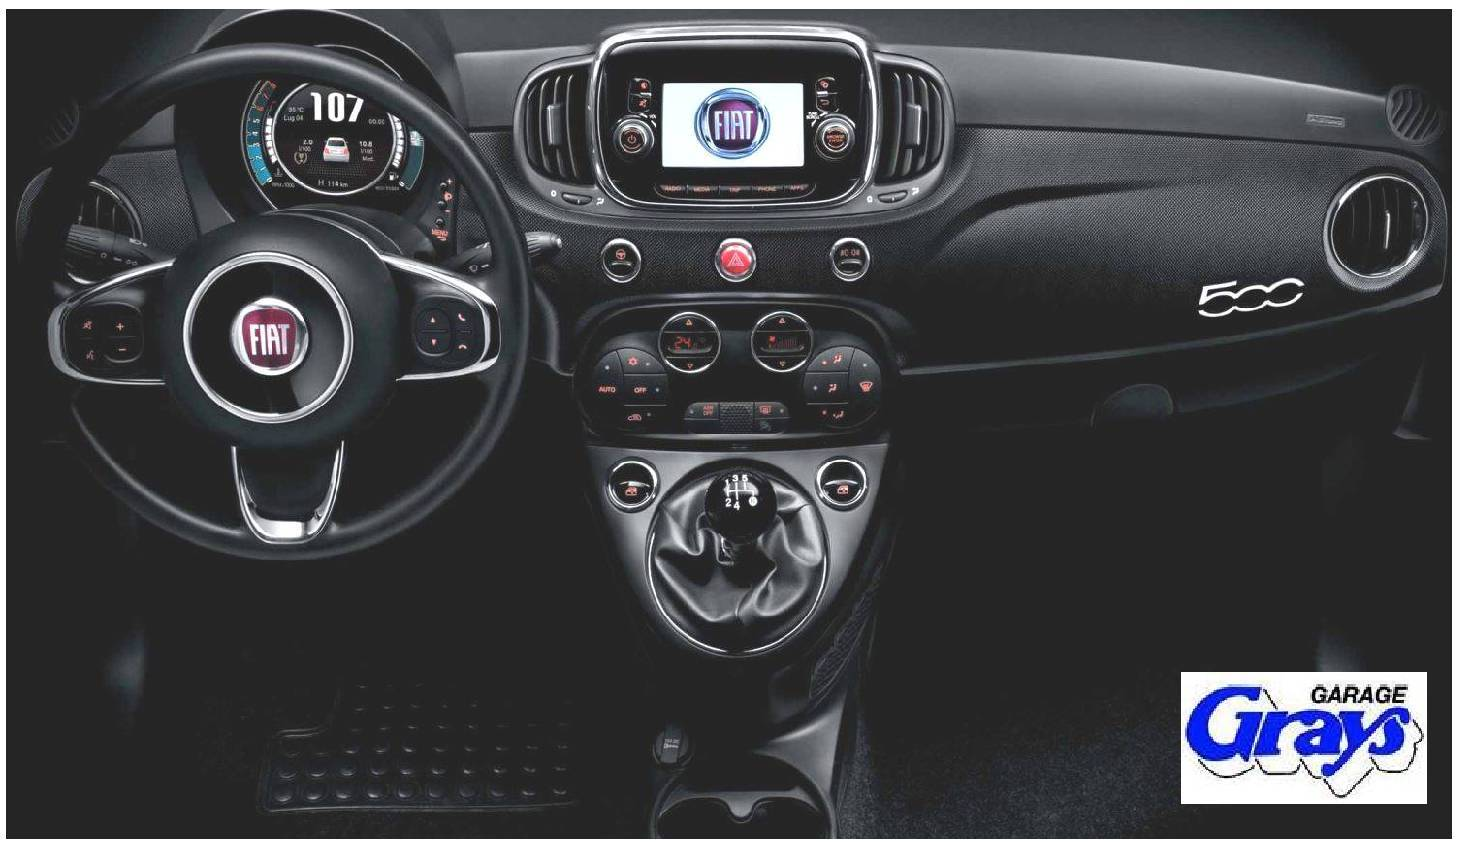 fiat 500 micro carbon wrapped dashboard (rhd) kit | 50927597